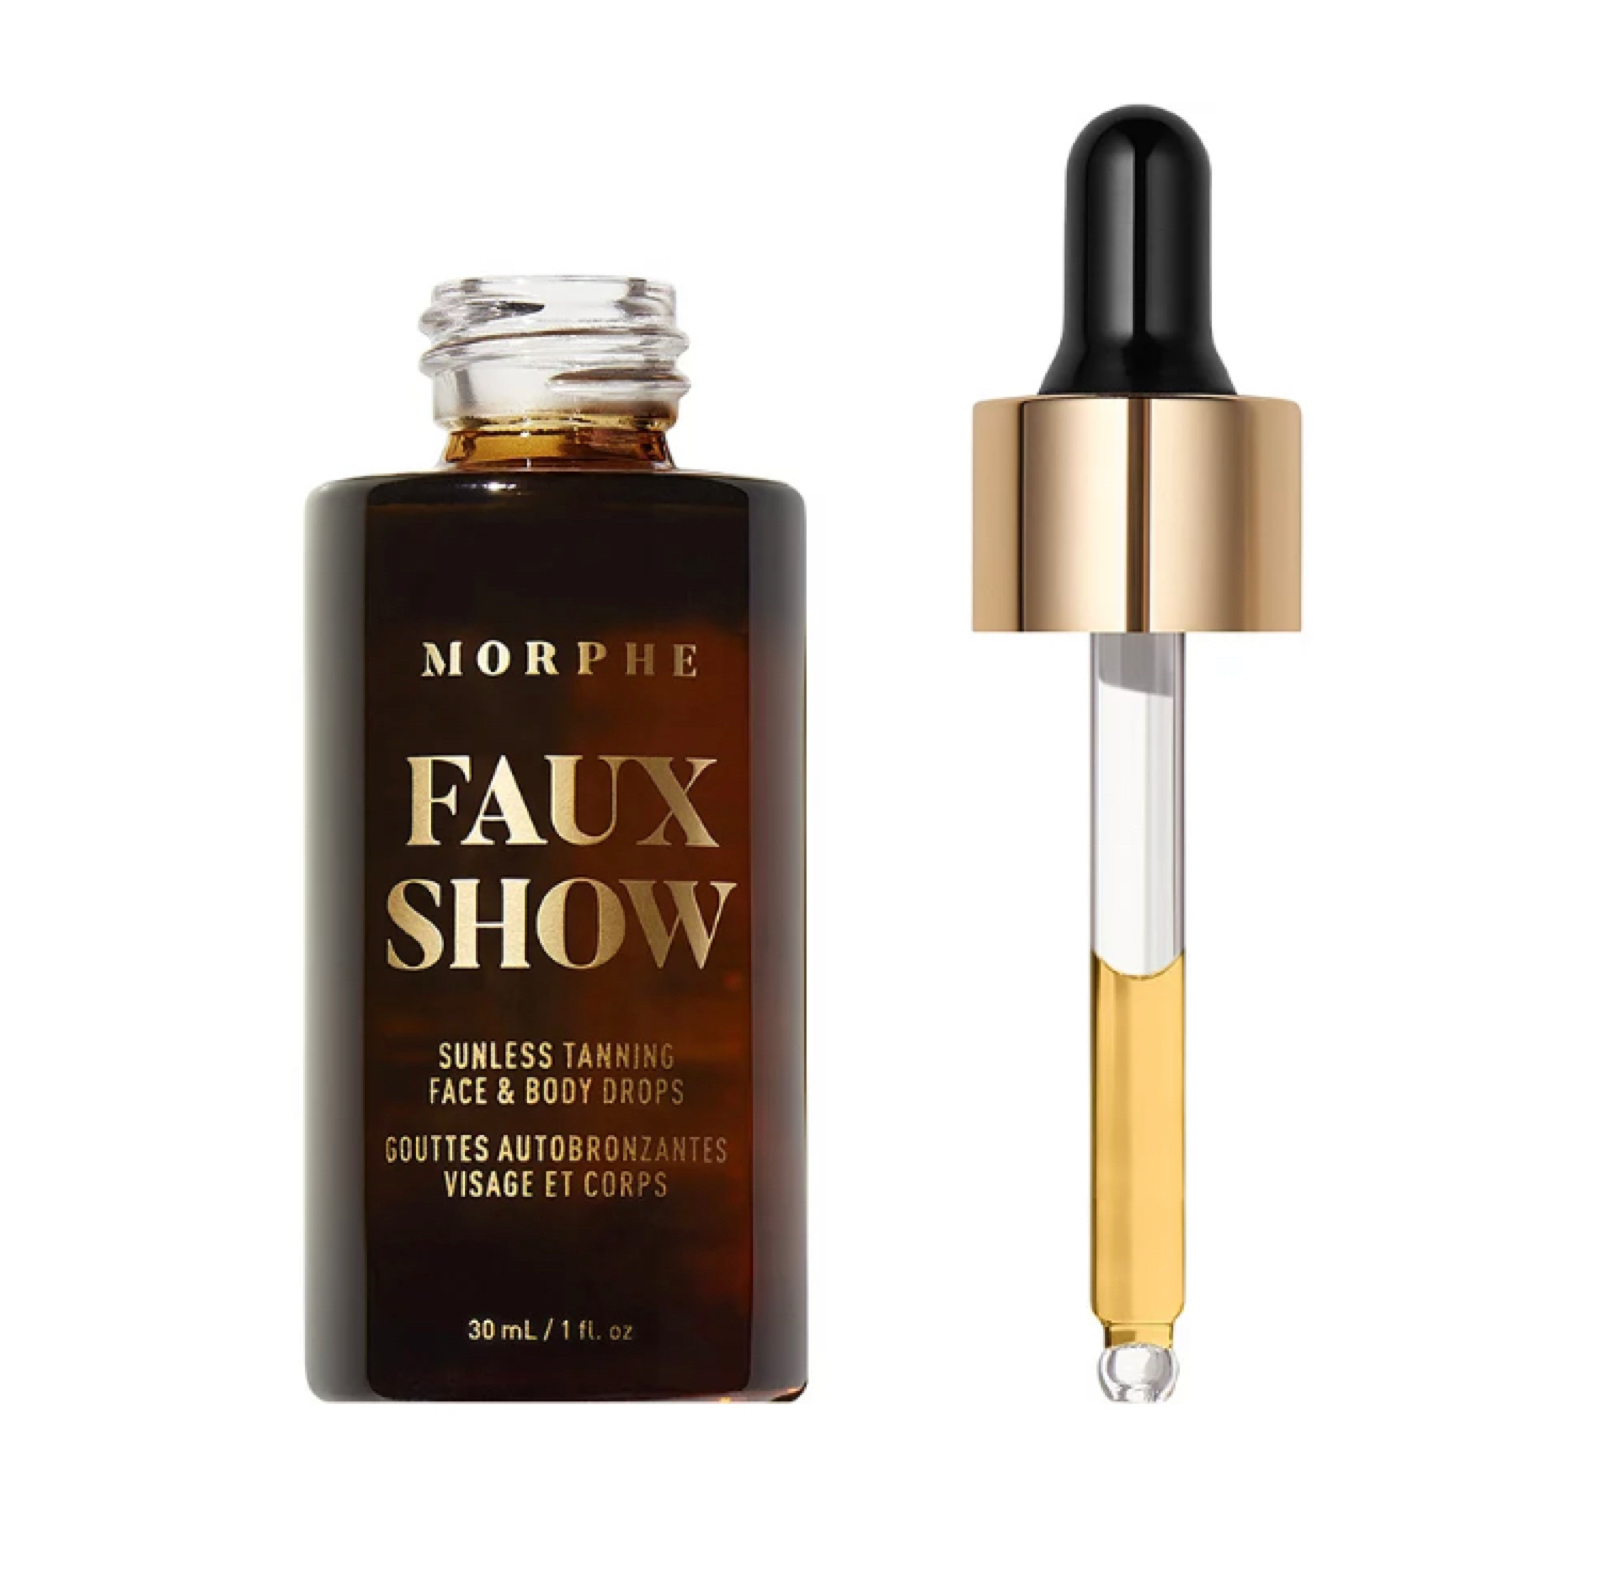 Morphe Faux Show Sunless Tanning Face & Body Drops